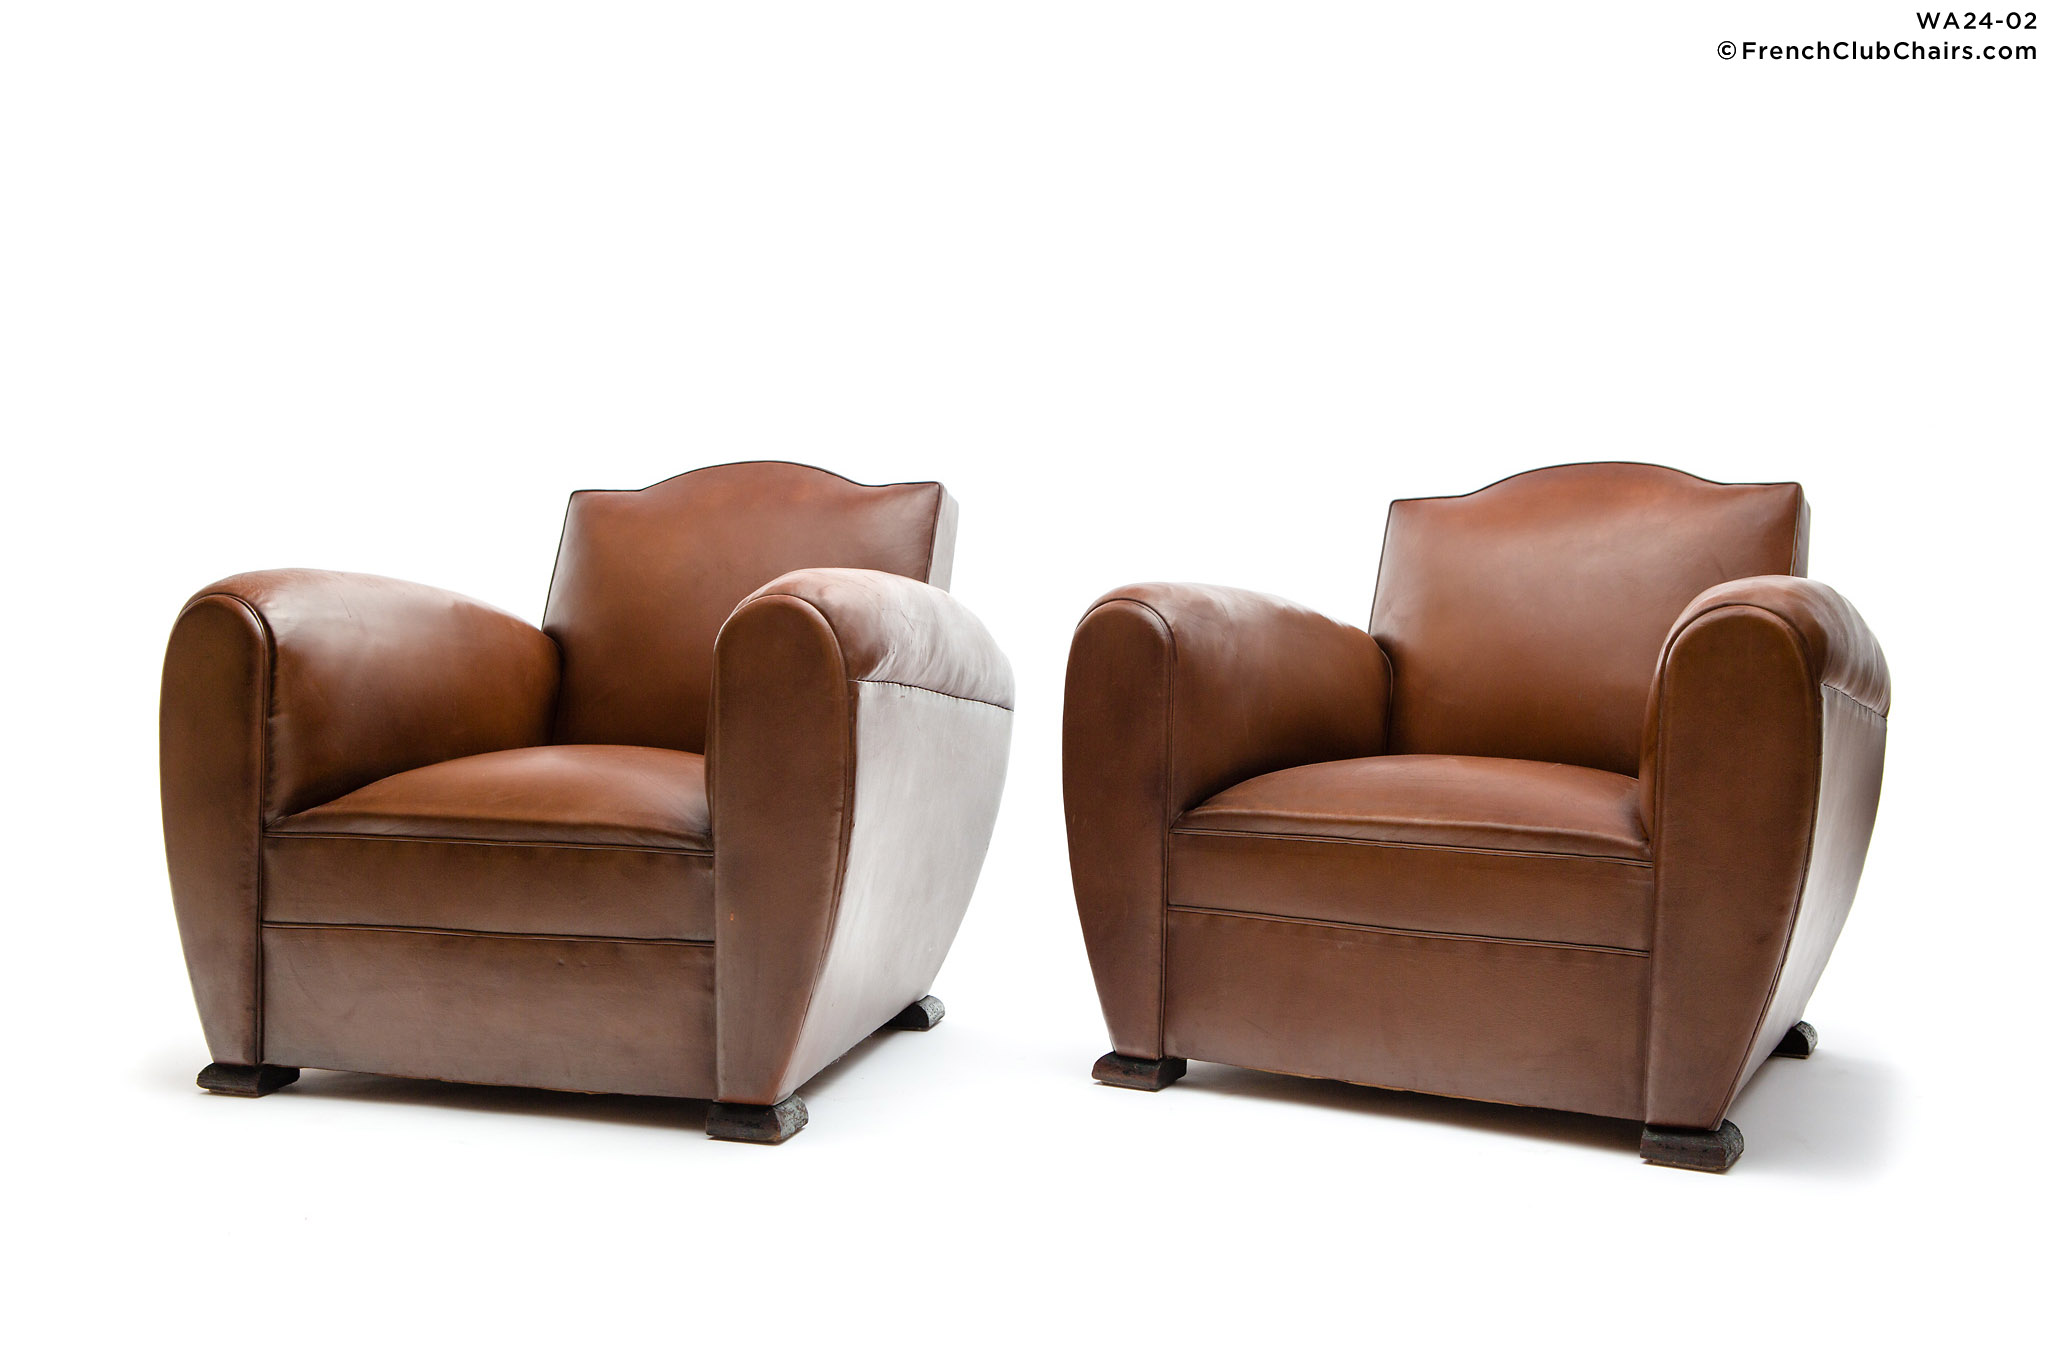 WA24-02_GENDARMELEHAVREFONCEPAIR_W_1TQ-v01-williams-antiks-leather-french-club-chair-wa_fcccom_w